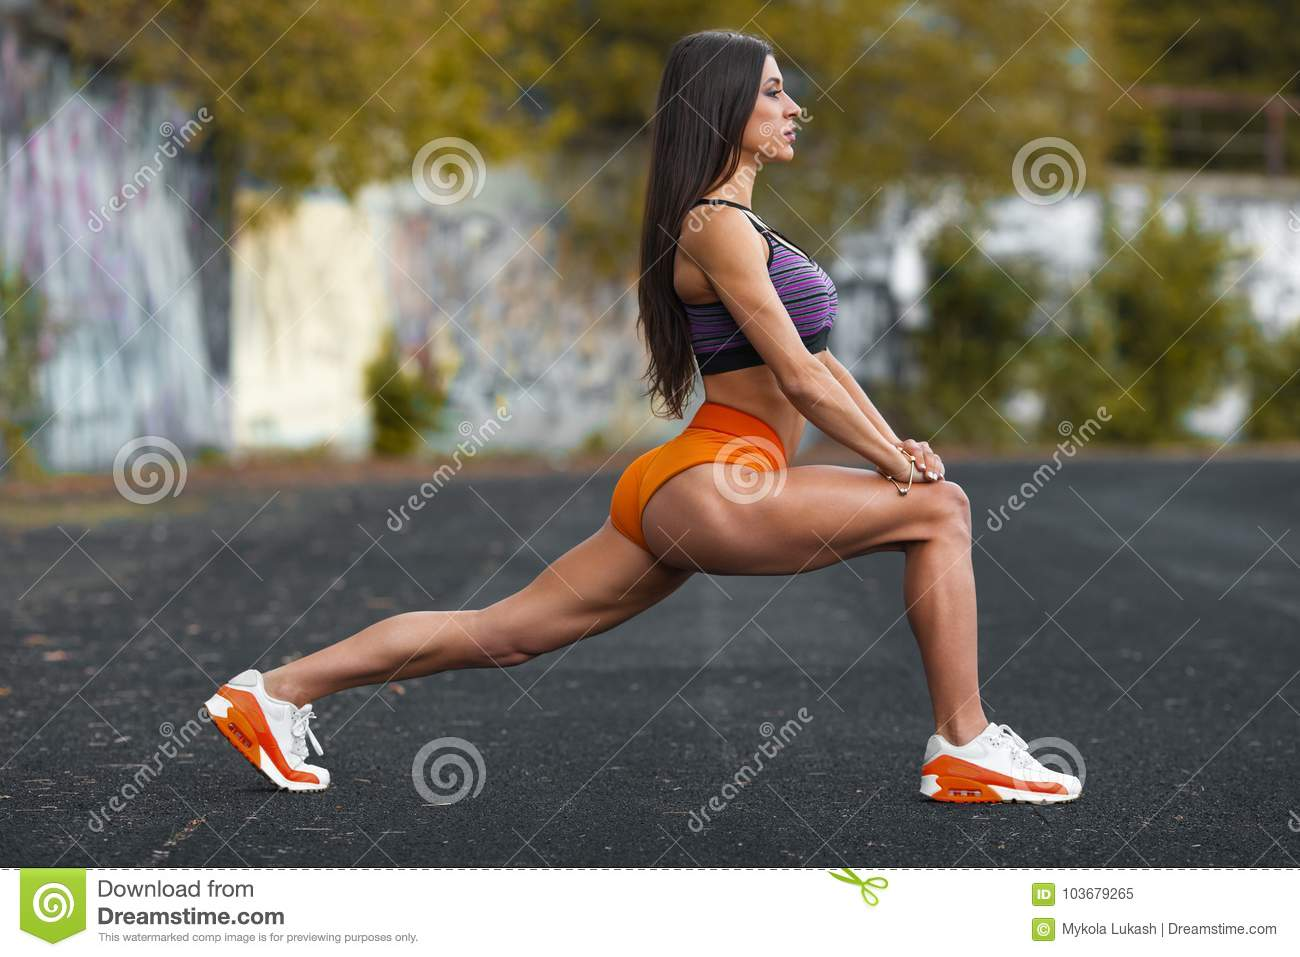 Fitness Woman Doing Lunges Exercises For Leg Muscle Workout Training